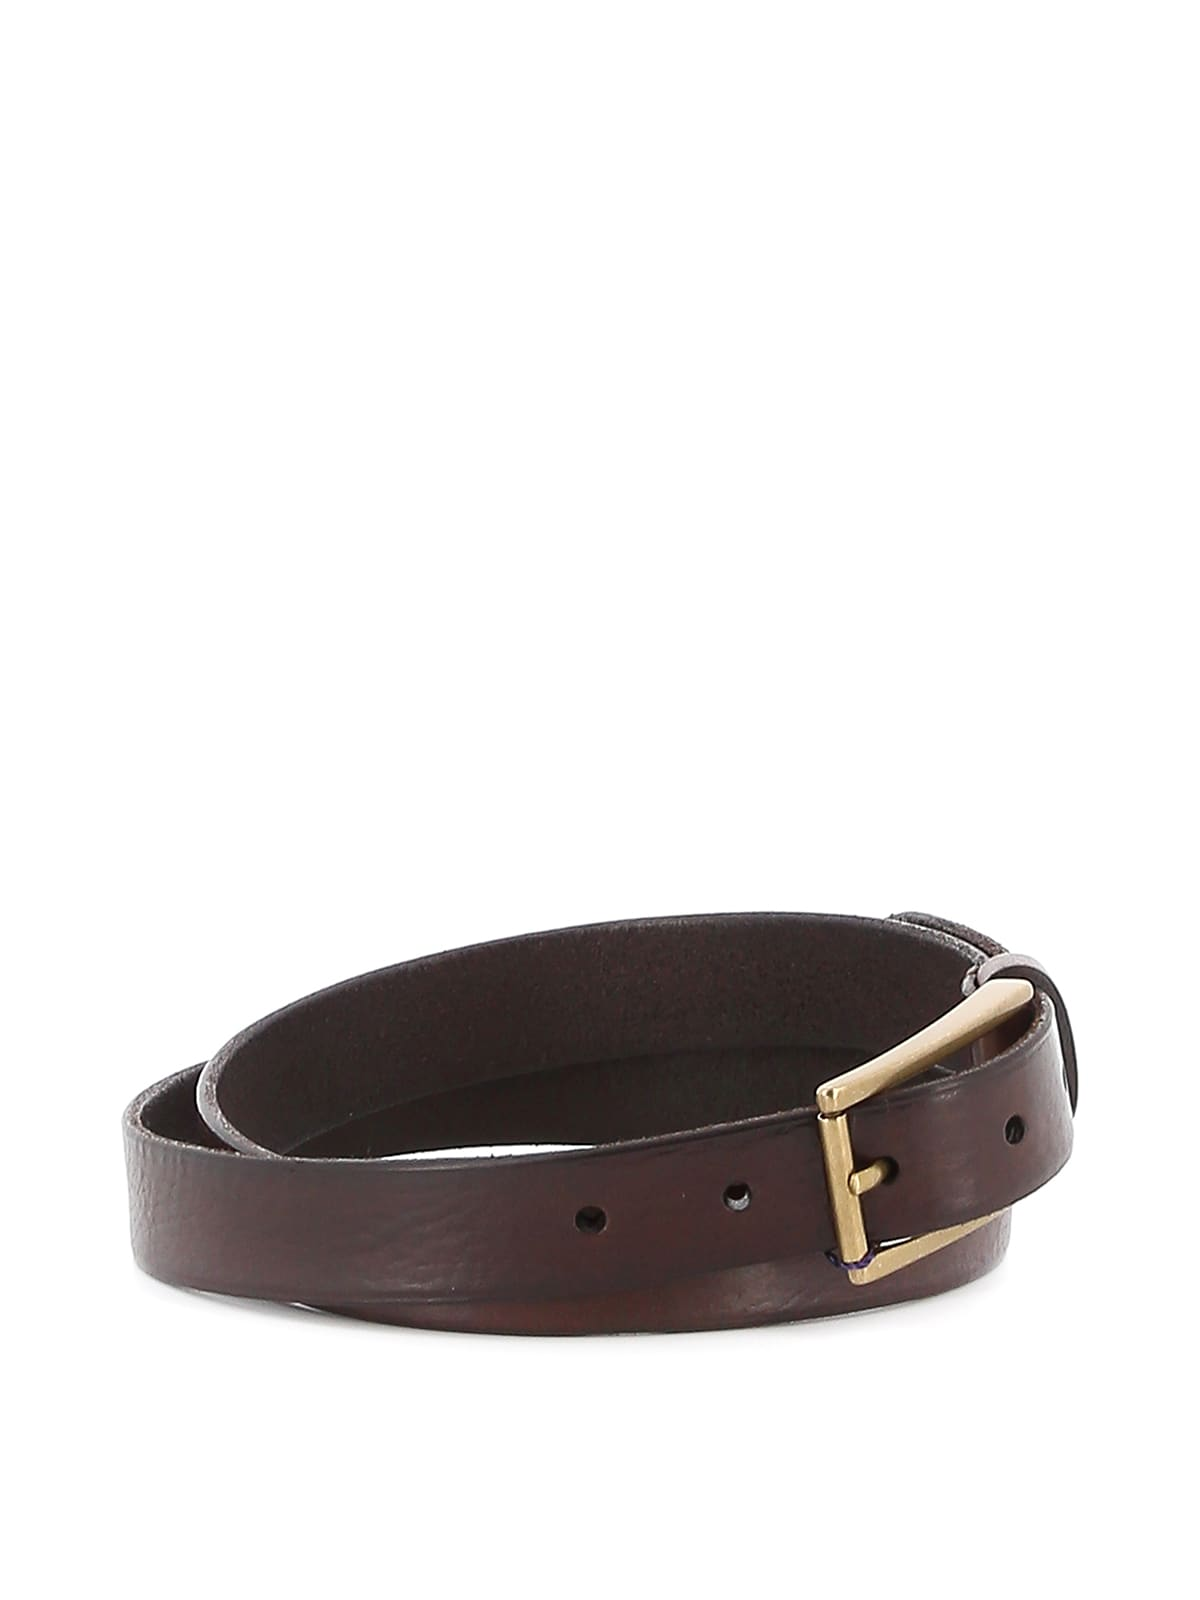 Andersons Belt Leather